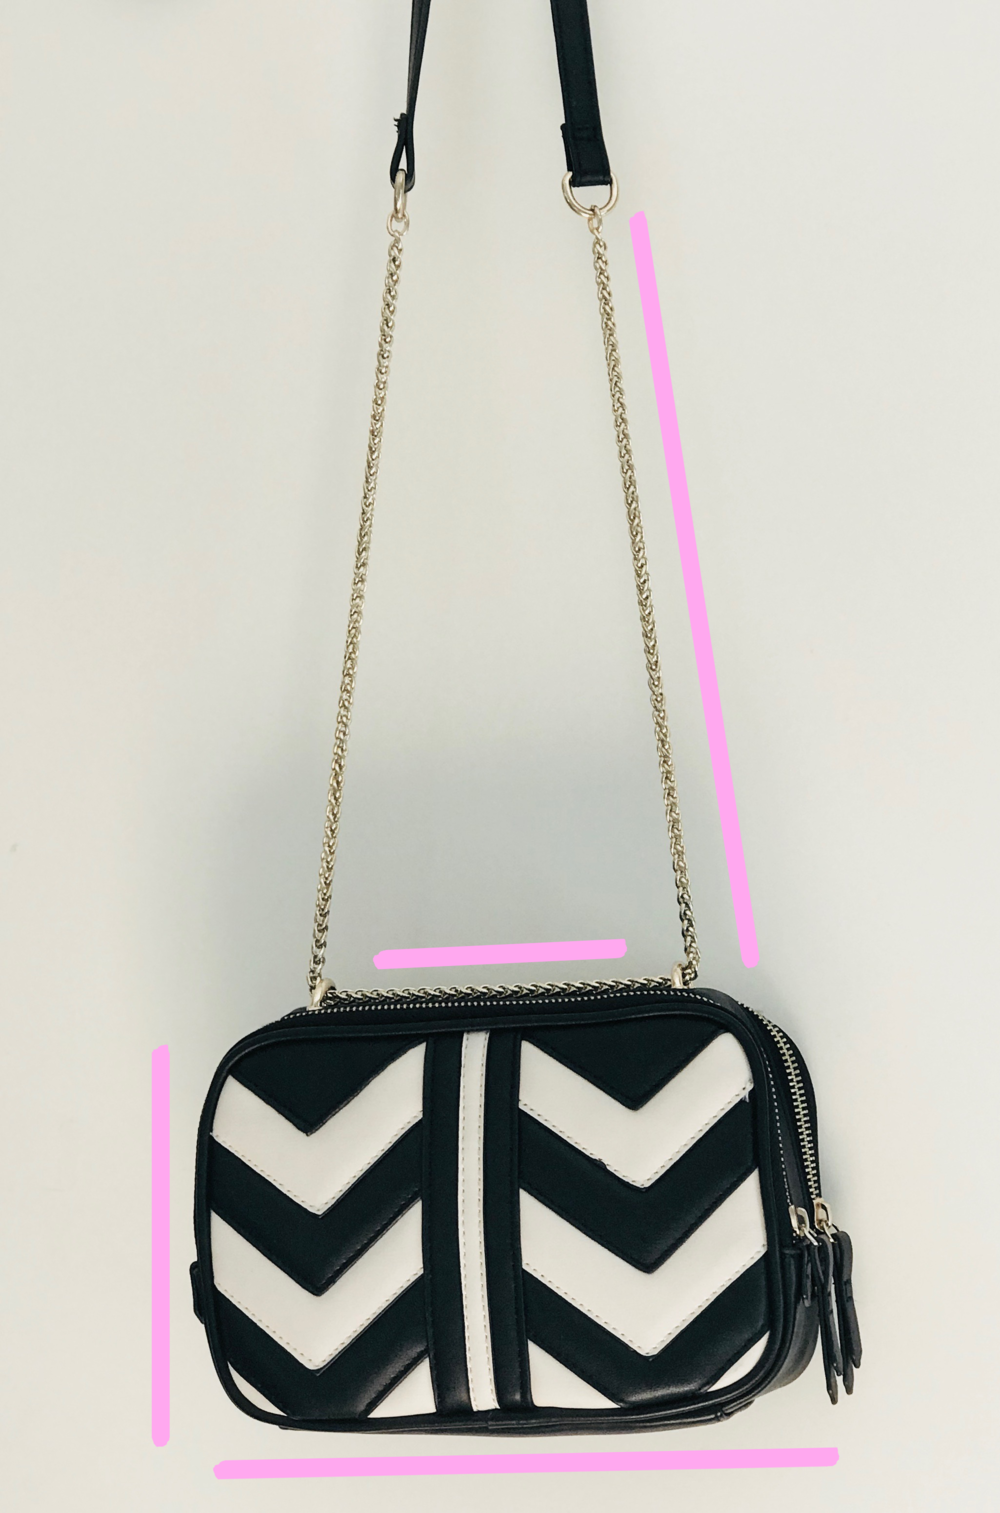 Accessorize black and white bag | My Current Fave High Street Bags!